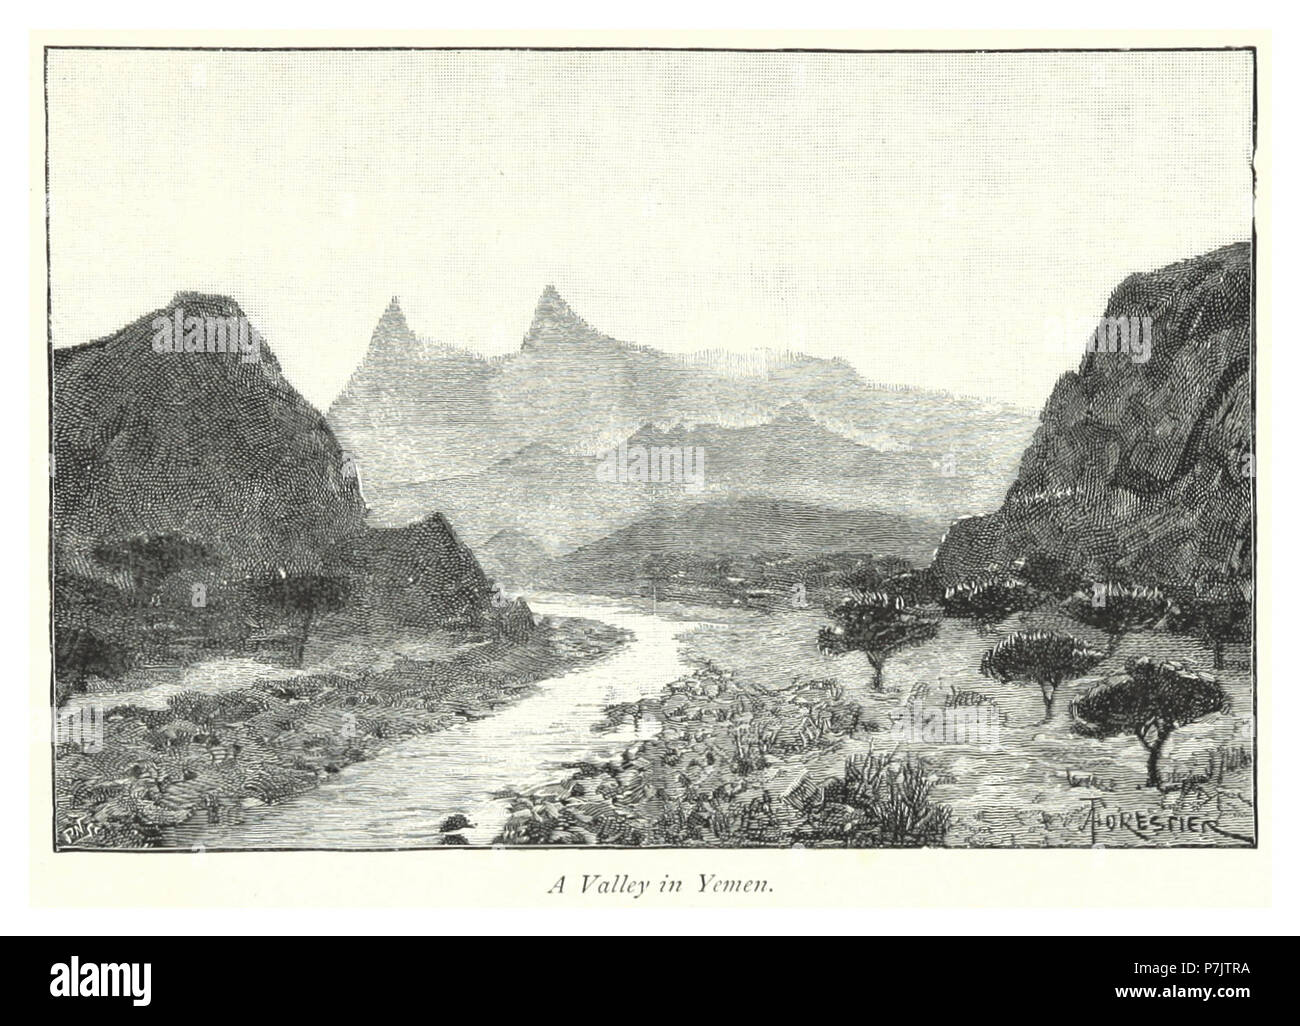 231 A valley in Yemen. - Stock Image